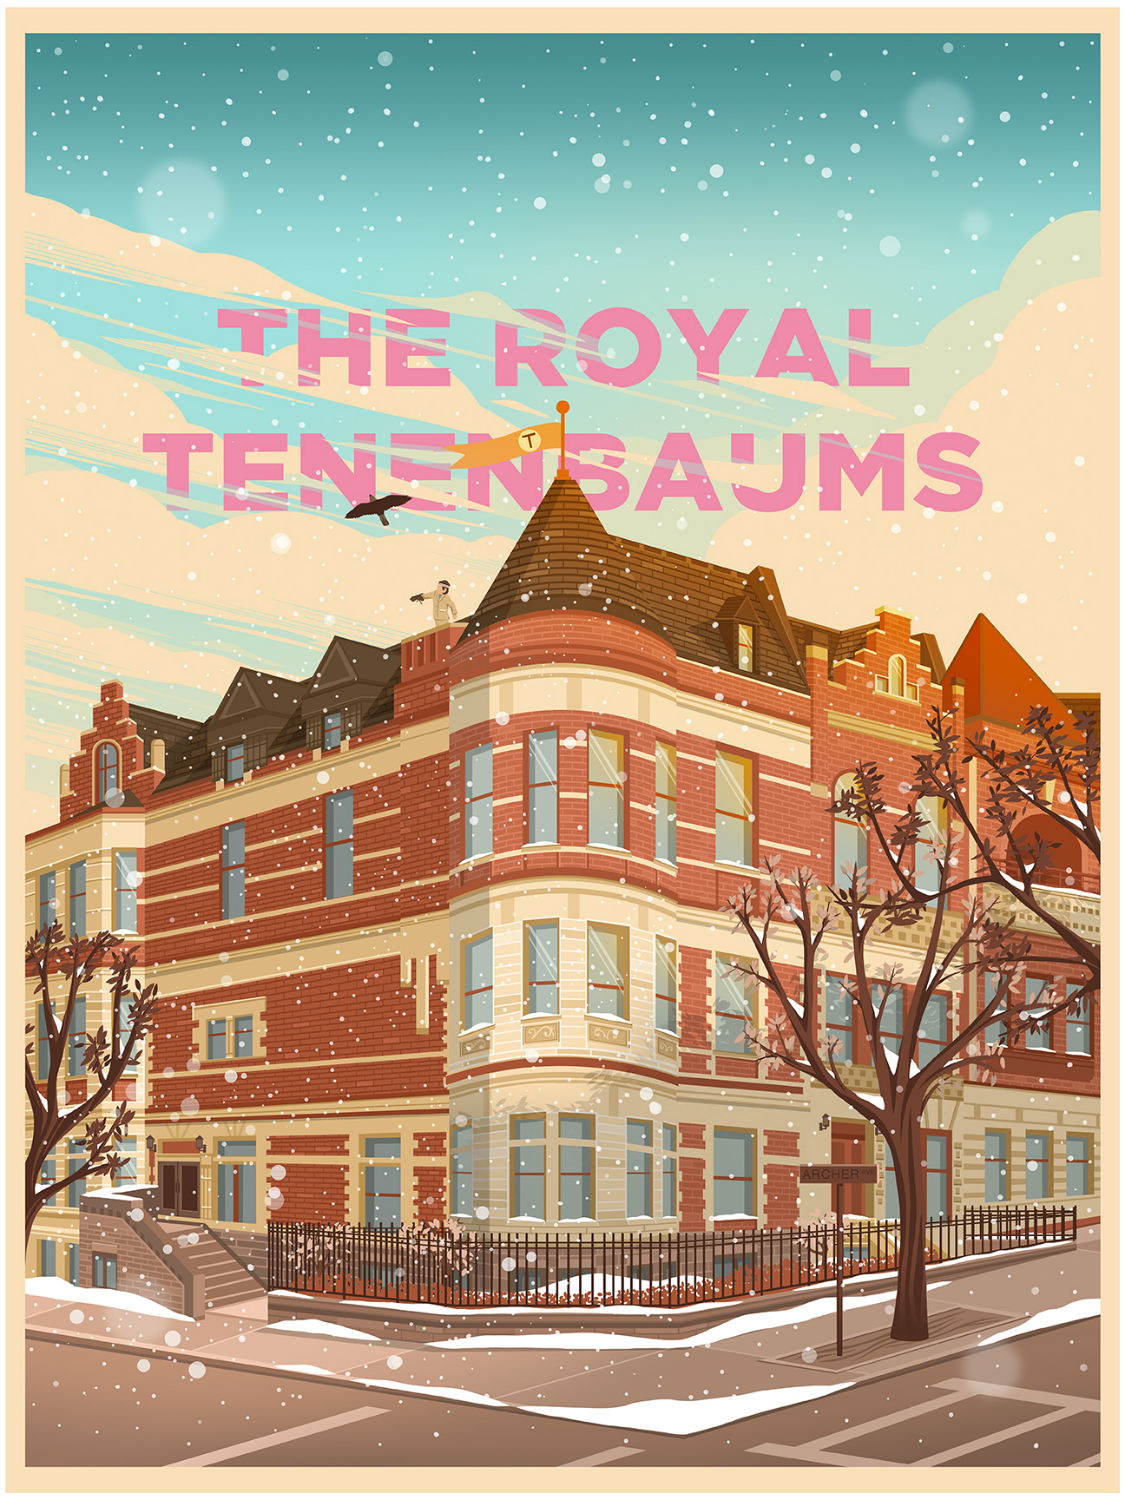 George Townley- the royal tenenbaums